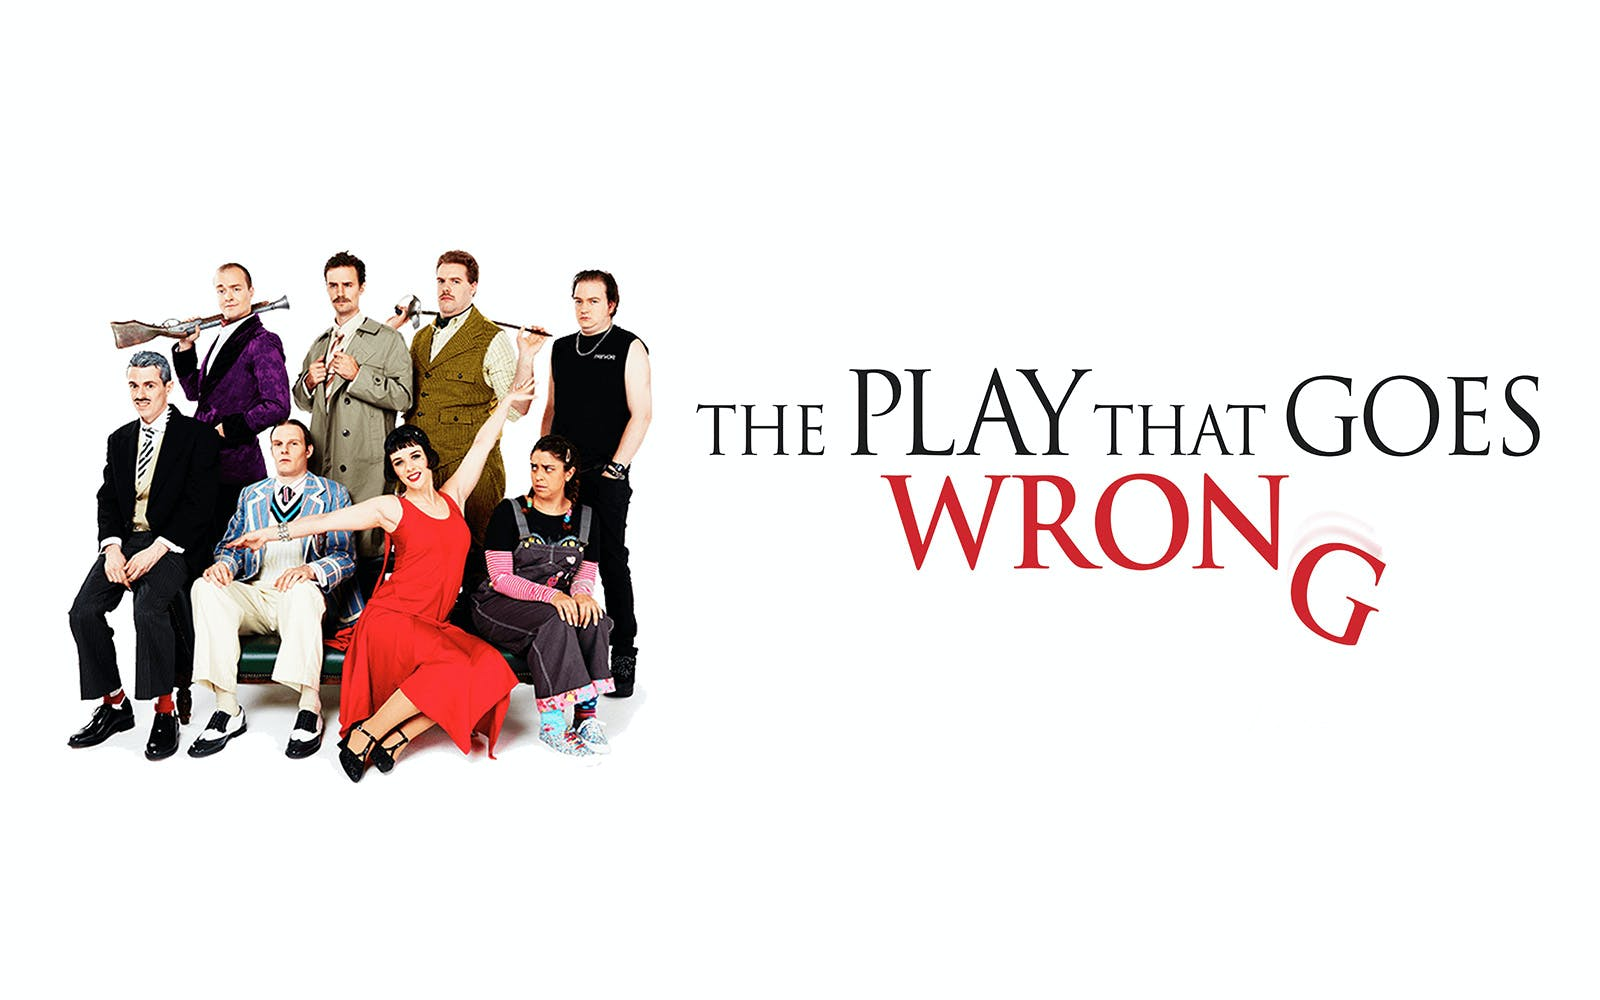 Best Broadway Shows - February 2018 - The Play that Goes Wrong